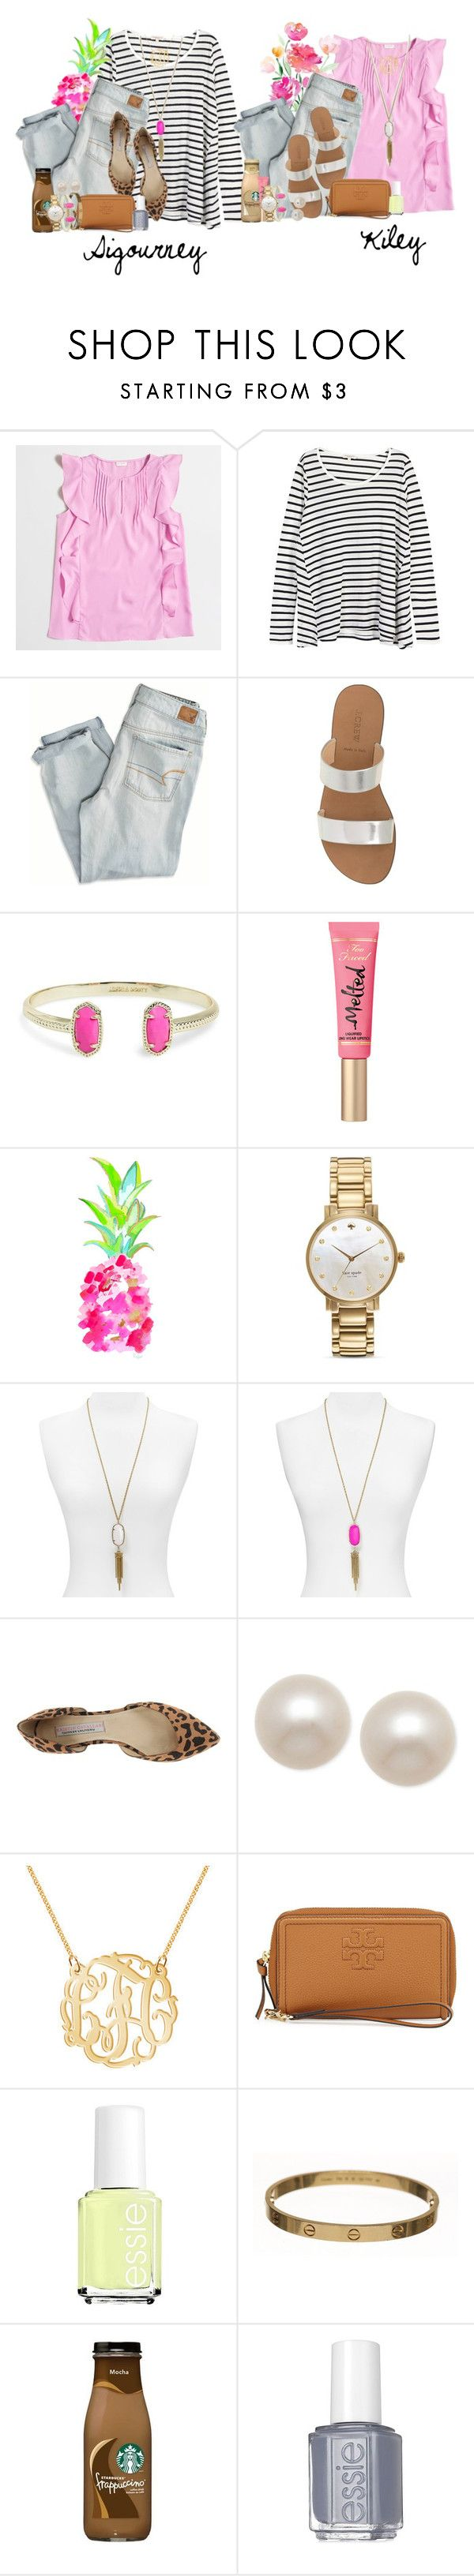 """""""bff set for kiley """" by smbprep ❤ liked on Polyvore featuring J.Crew, Demylee, American Eagle Outfitters, Kendra Scott, Too Faced Cosmetics, Kate Spade, Chinese Laundry, Honora, Tory Burch and Essie"""